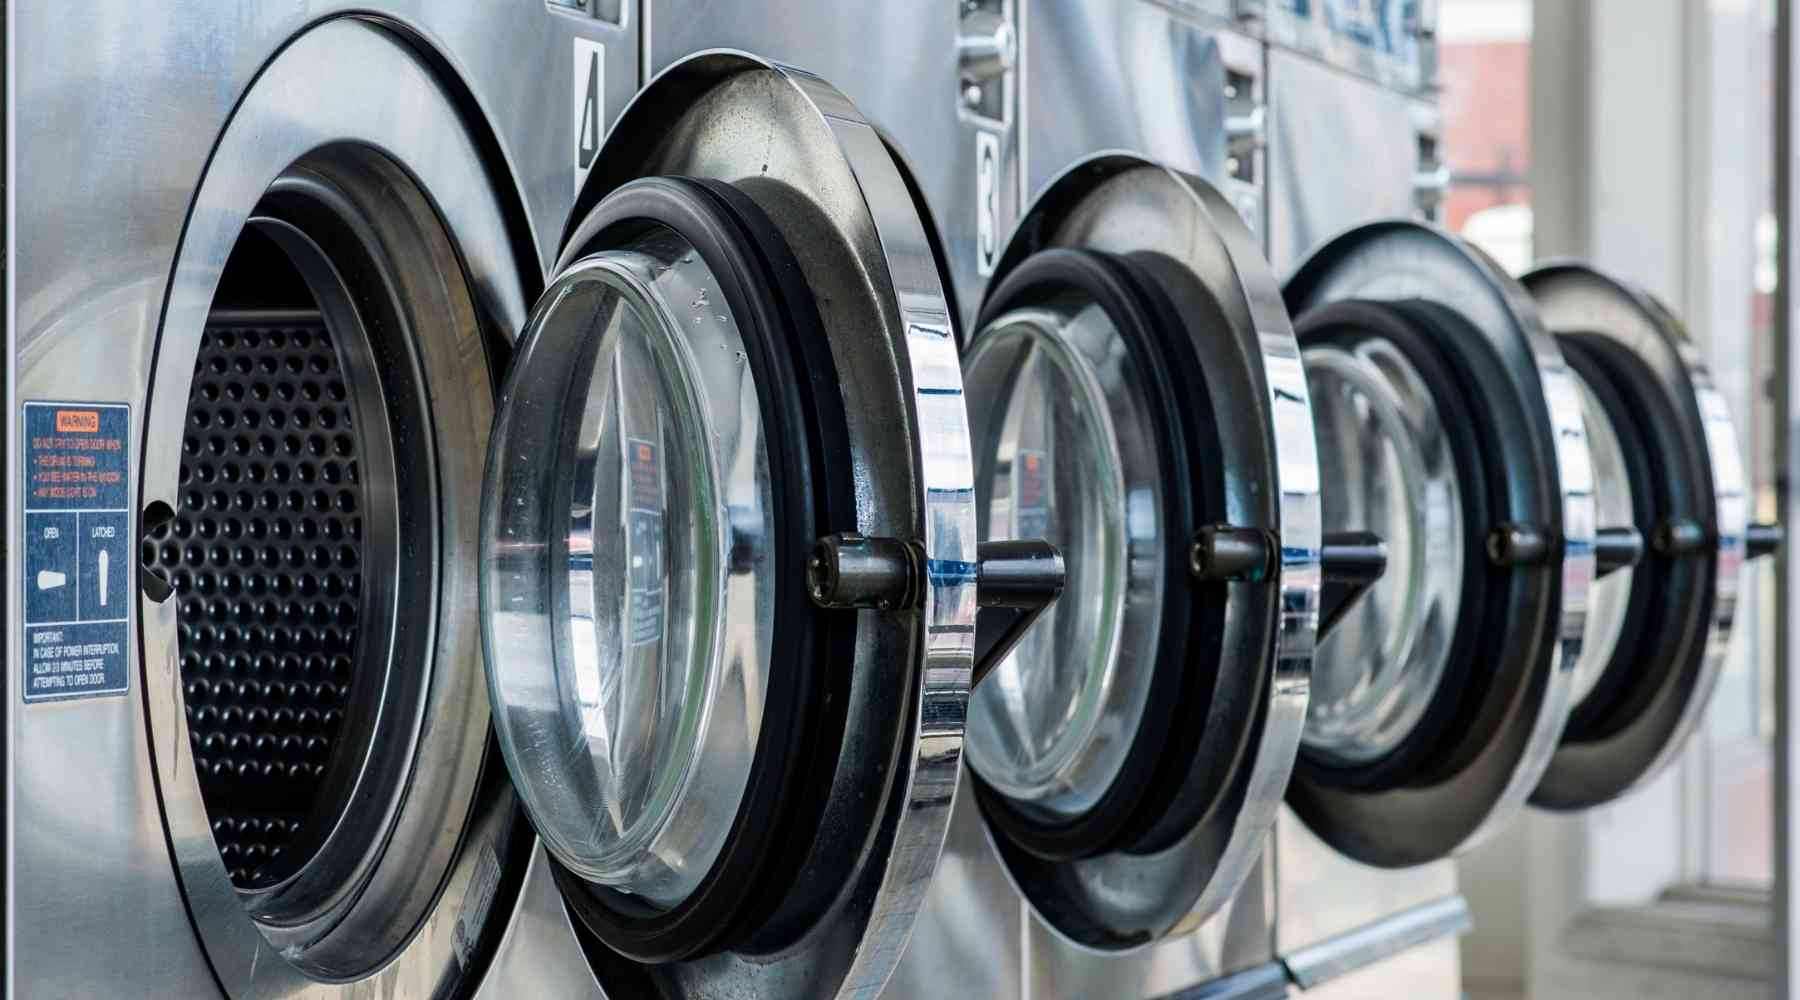 Top Business Ideas for Women - Laundry Business